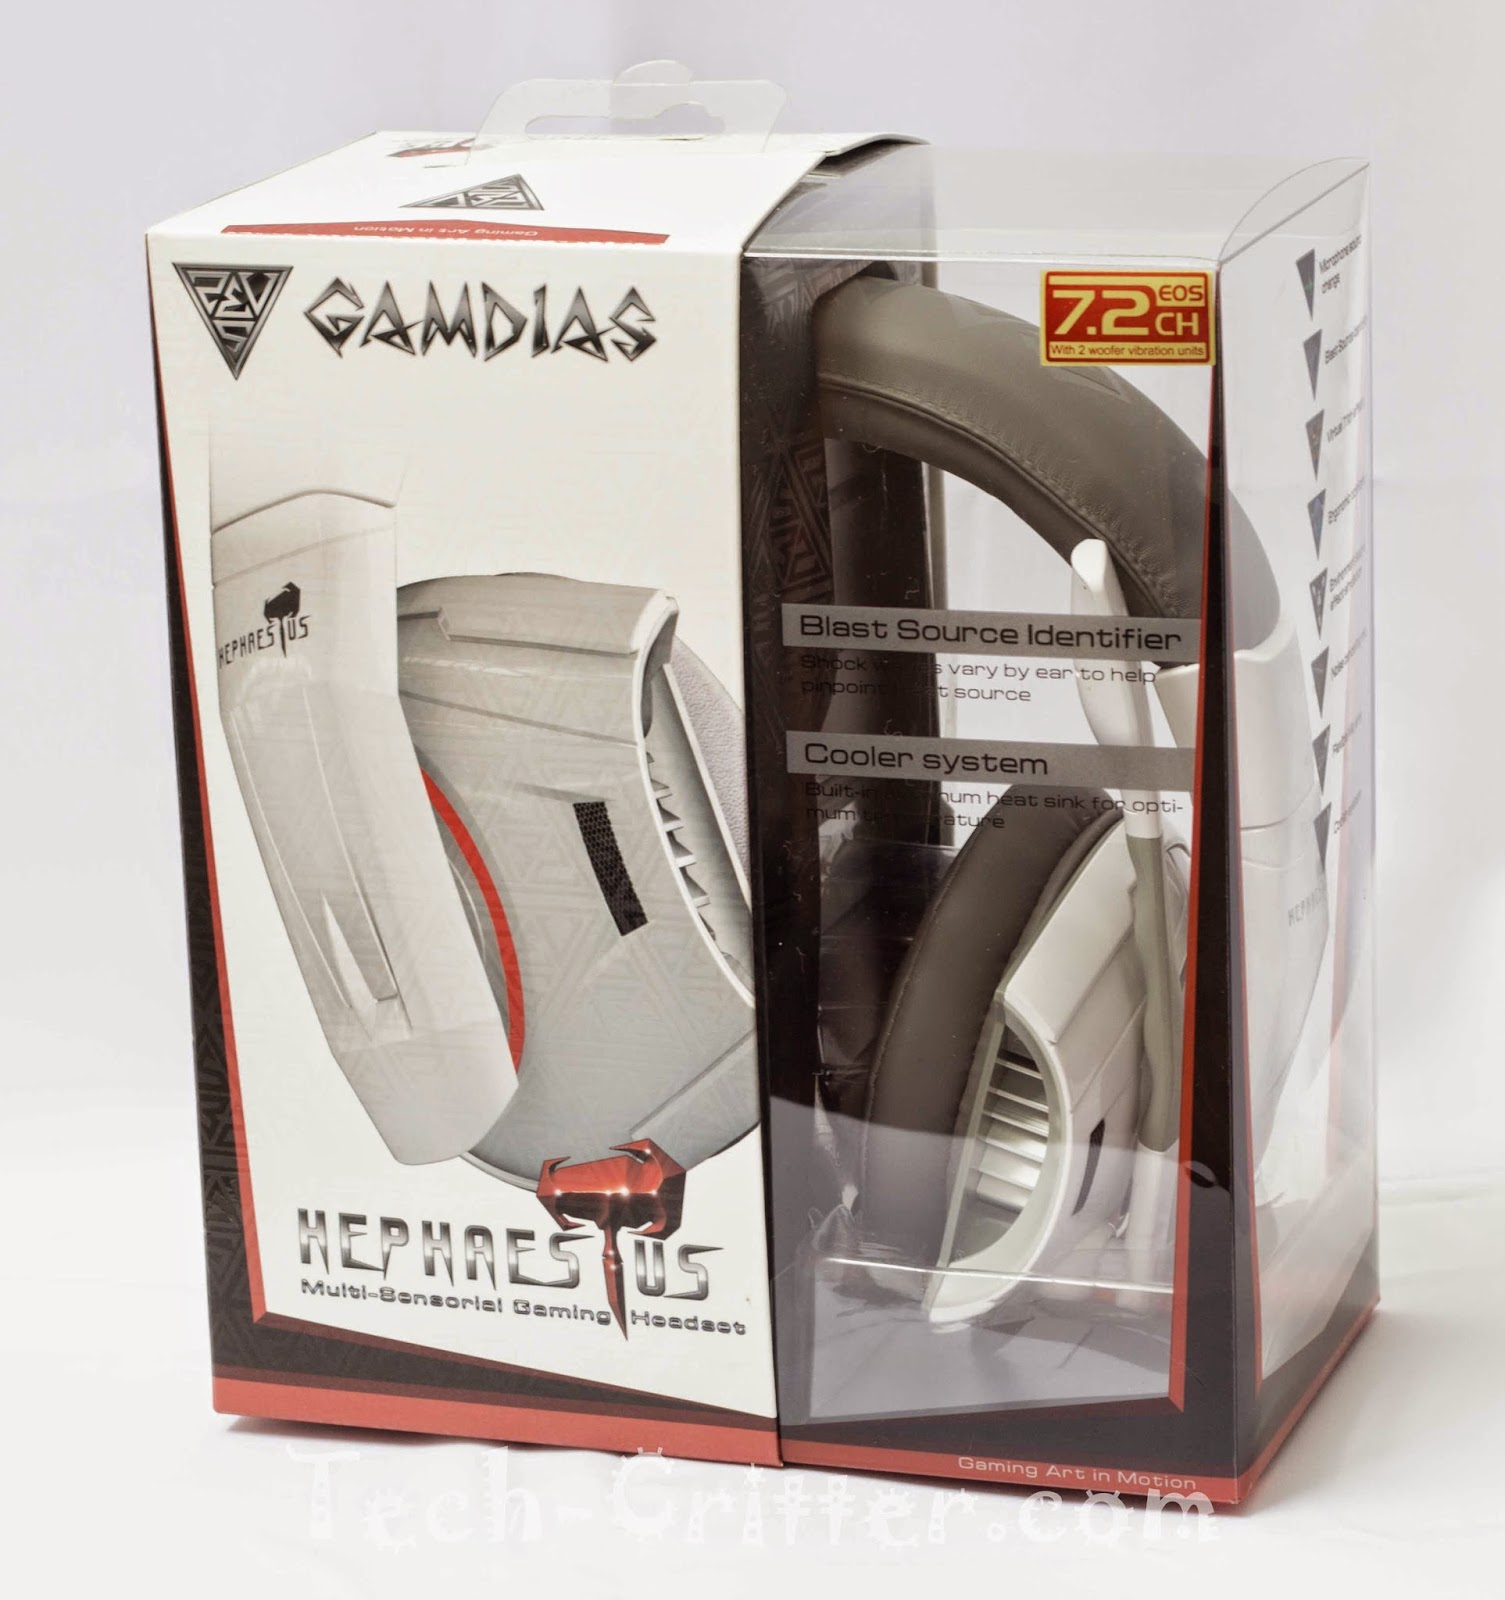 Unboxing & Review: Gamdias Hephaestus Gaming Headset 57